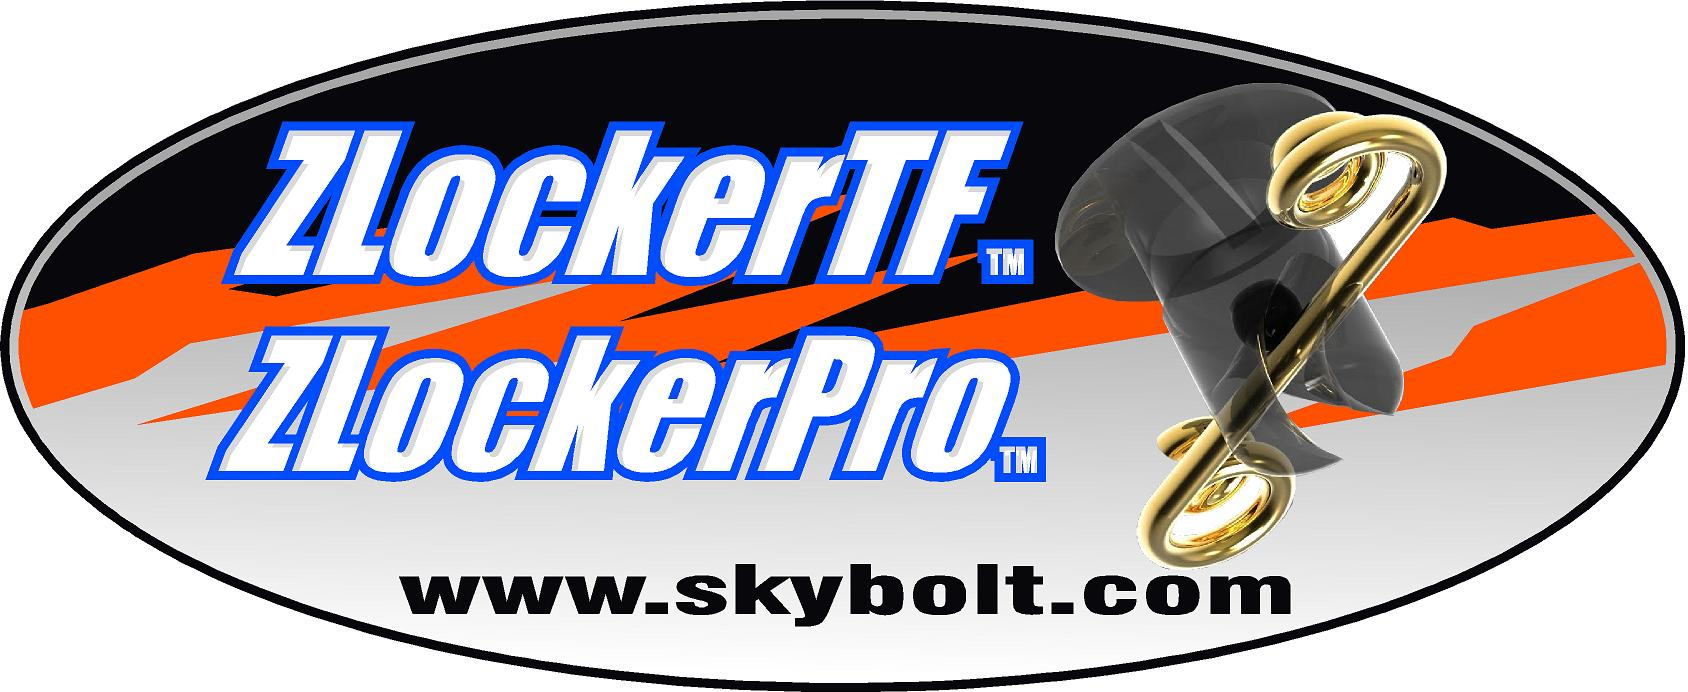 ZLocker Racing Fasteners